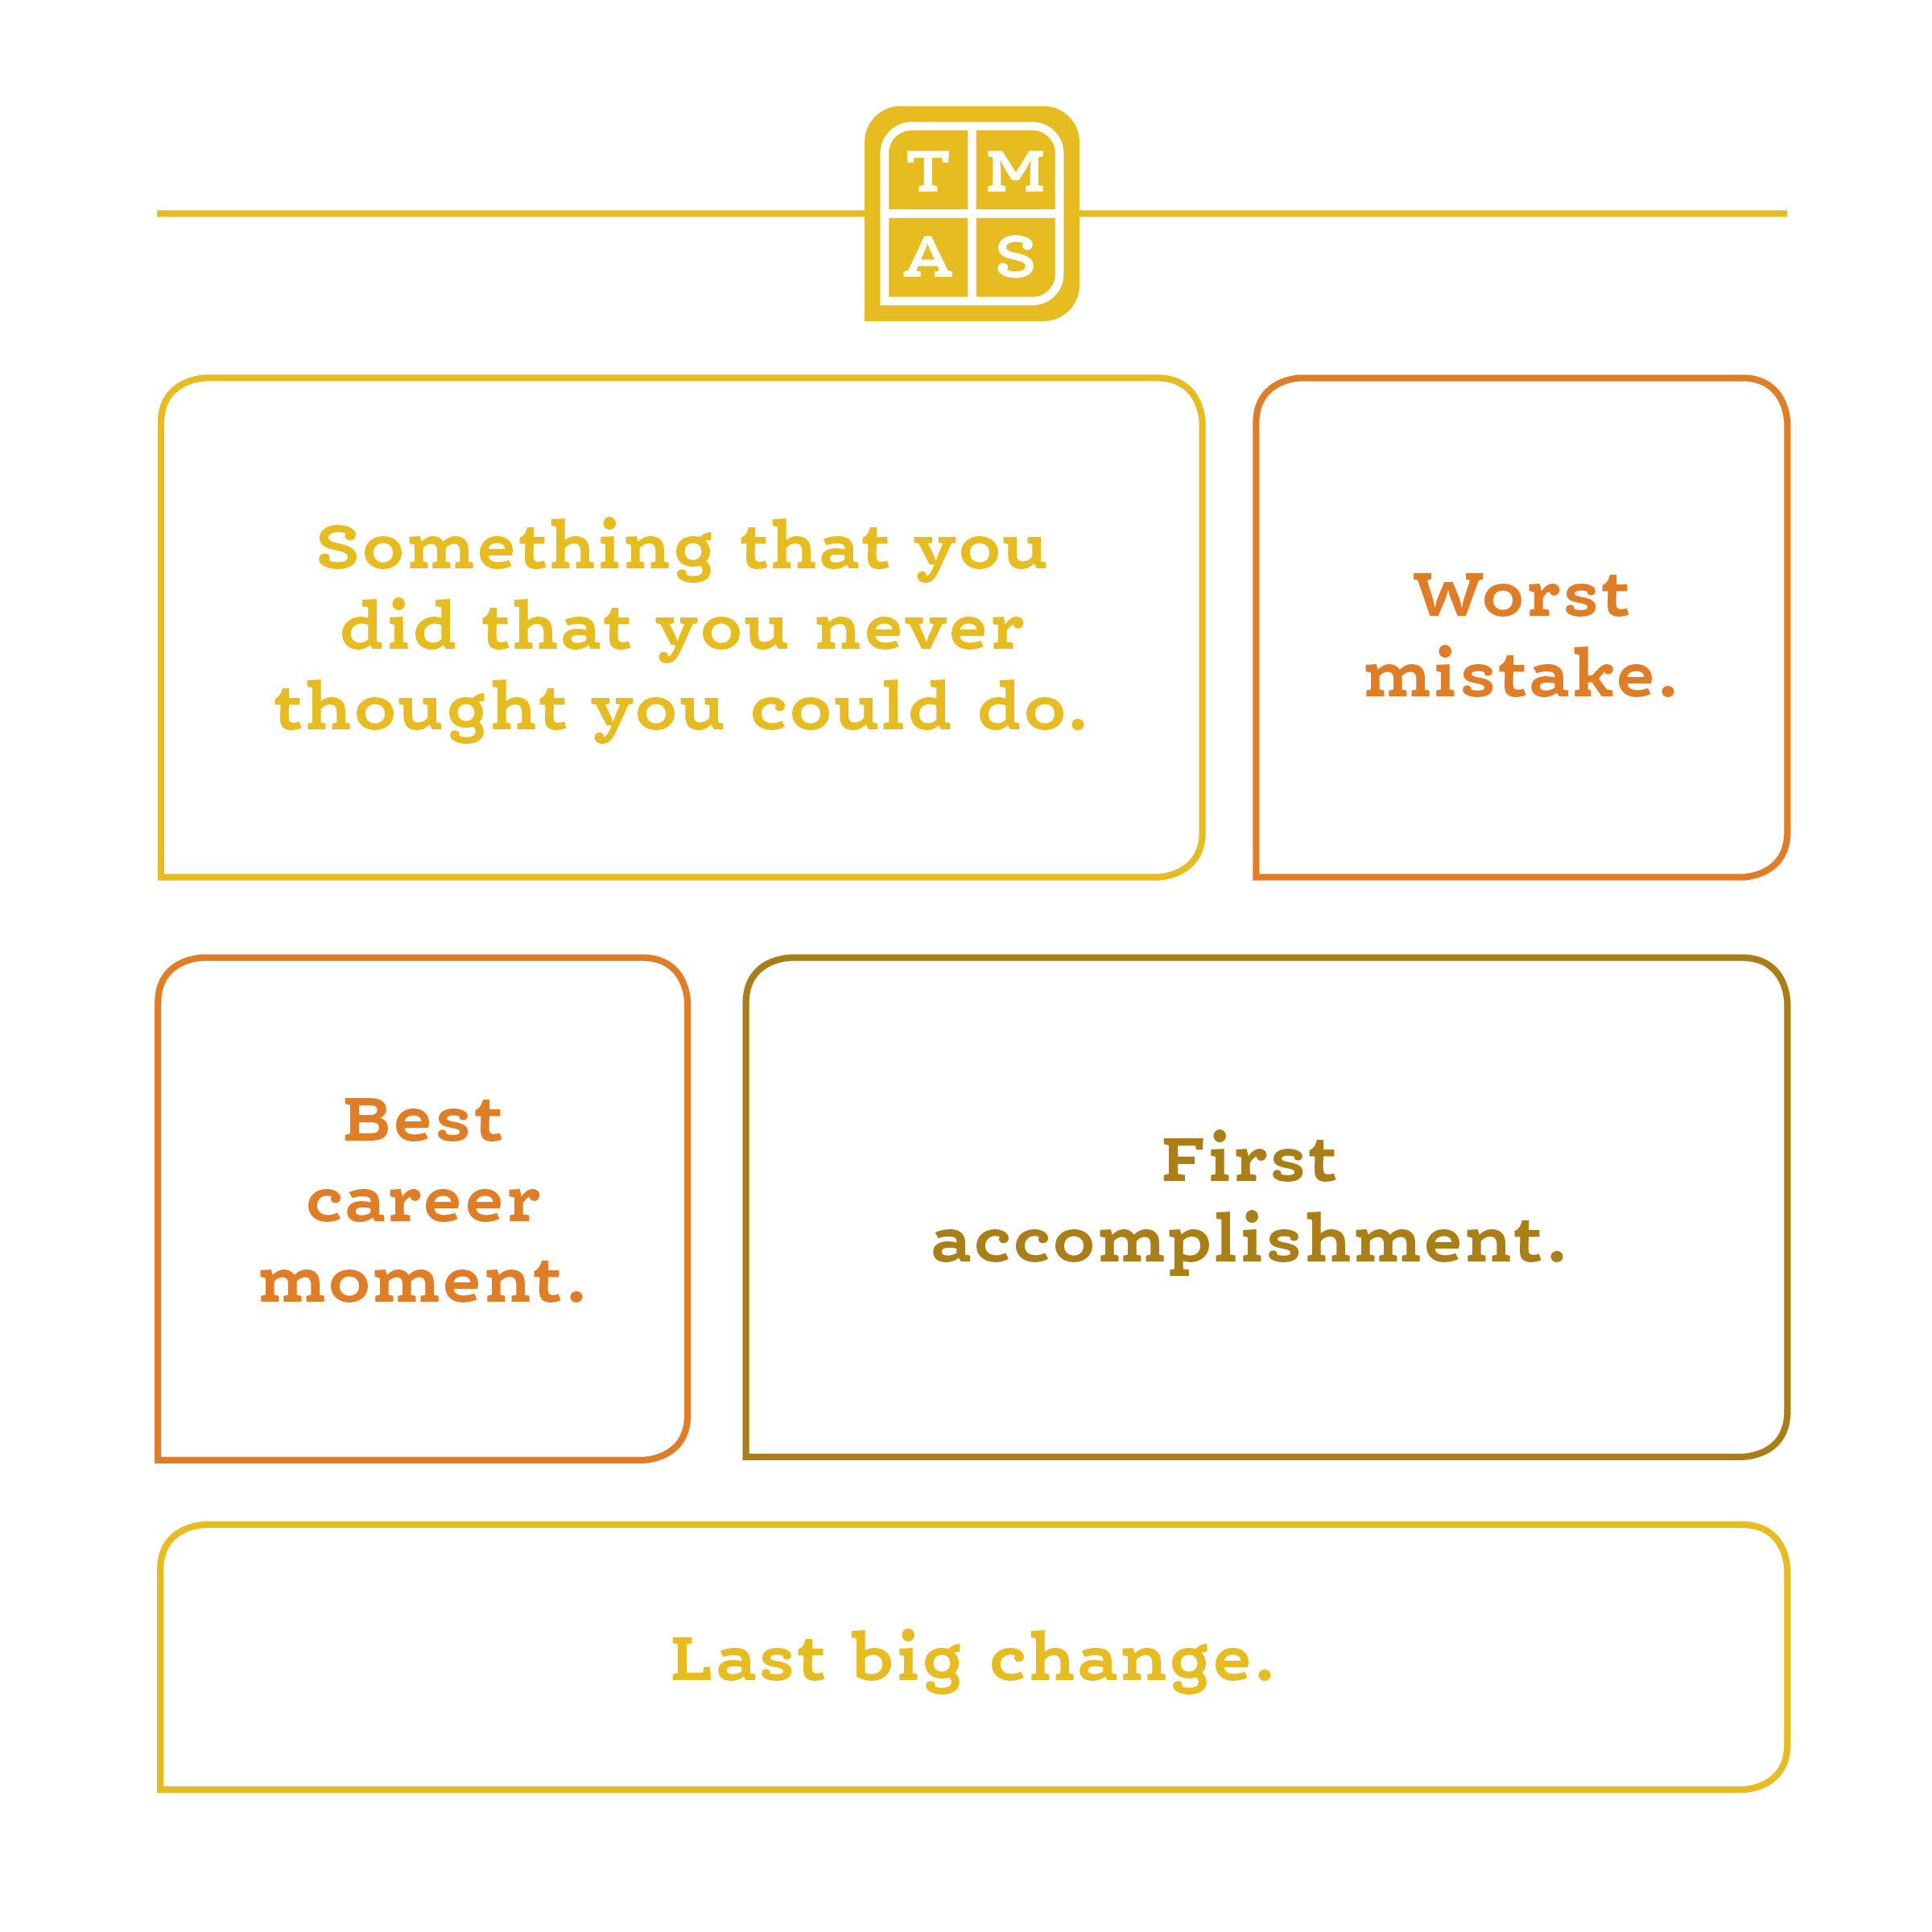 You can brainstorm your Back Pocket Stories using these prompts to start. 1. Something that you did that you never thought you could do. 2. Worst mistake. 3. Best career moment. 4. First accomplishment.